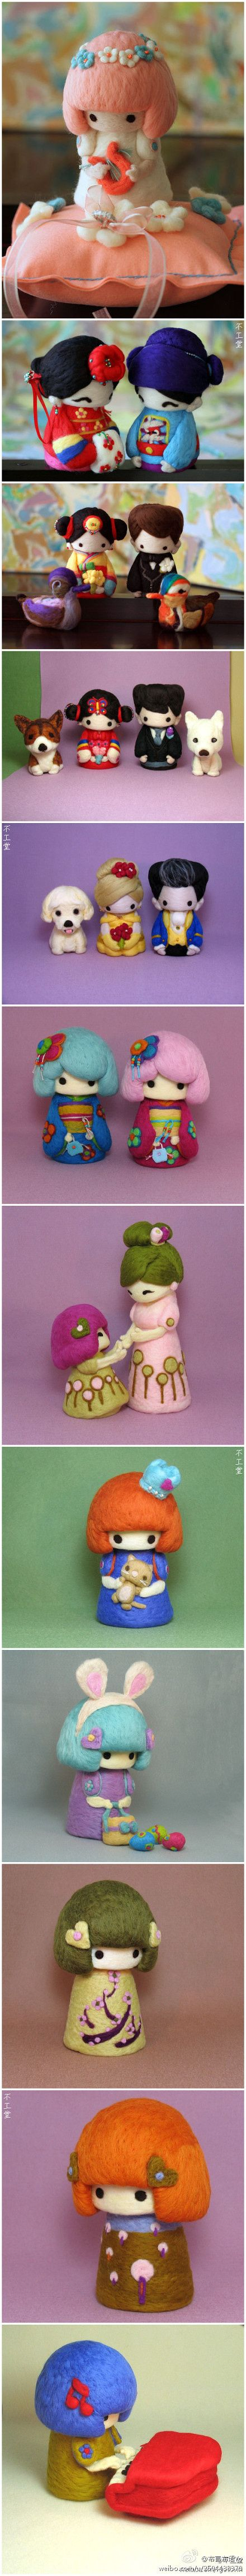 felt creations - I'd love to know the source